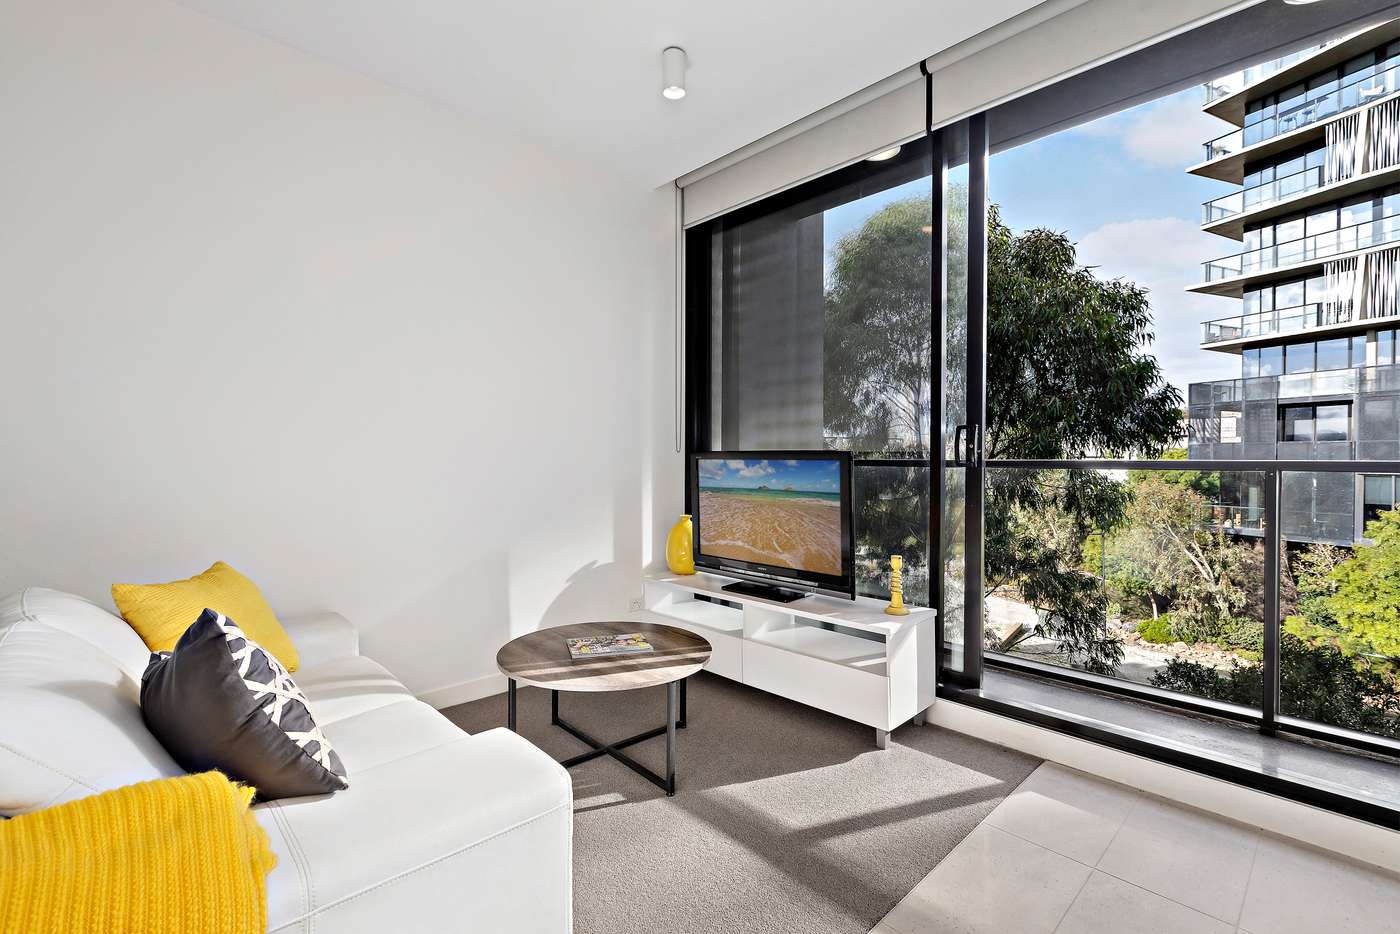 Main view of Homely apartment listing, 206/3 Clara Street, South Yarra VIC 3141